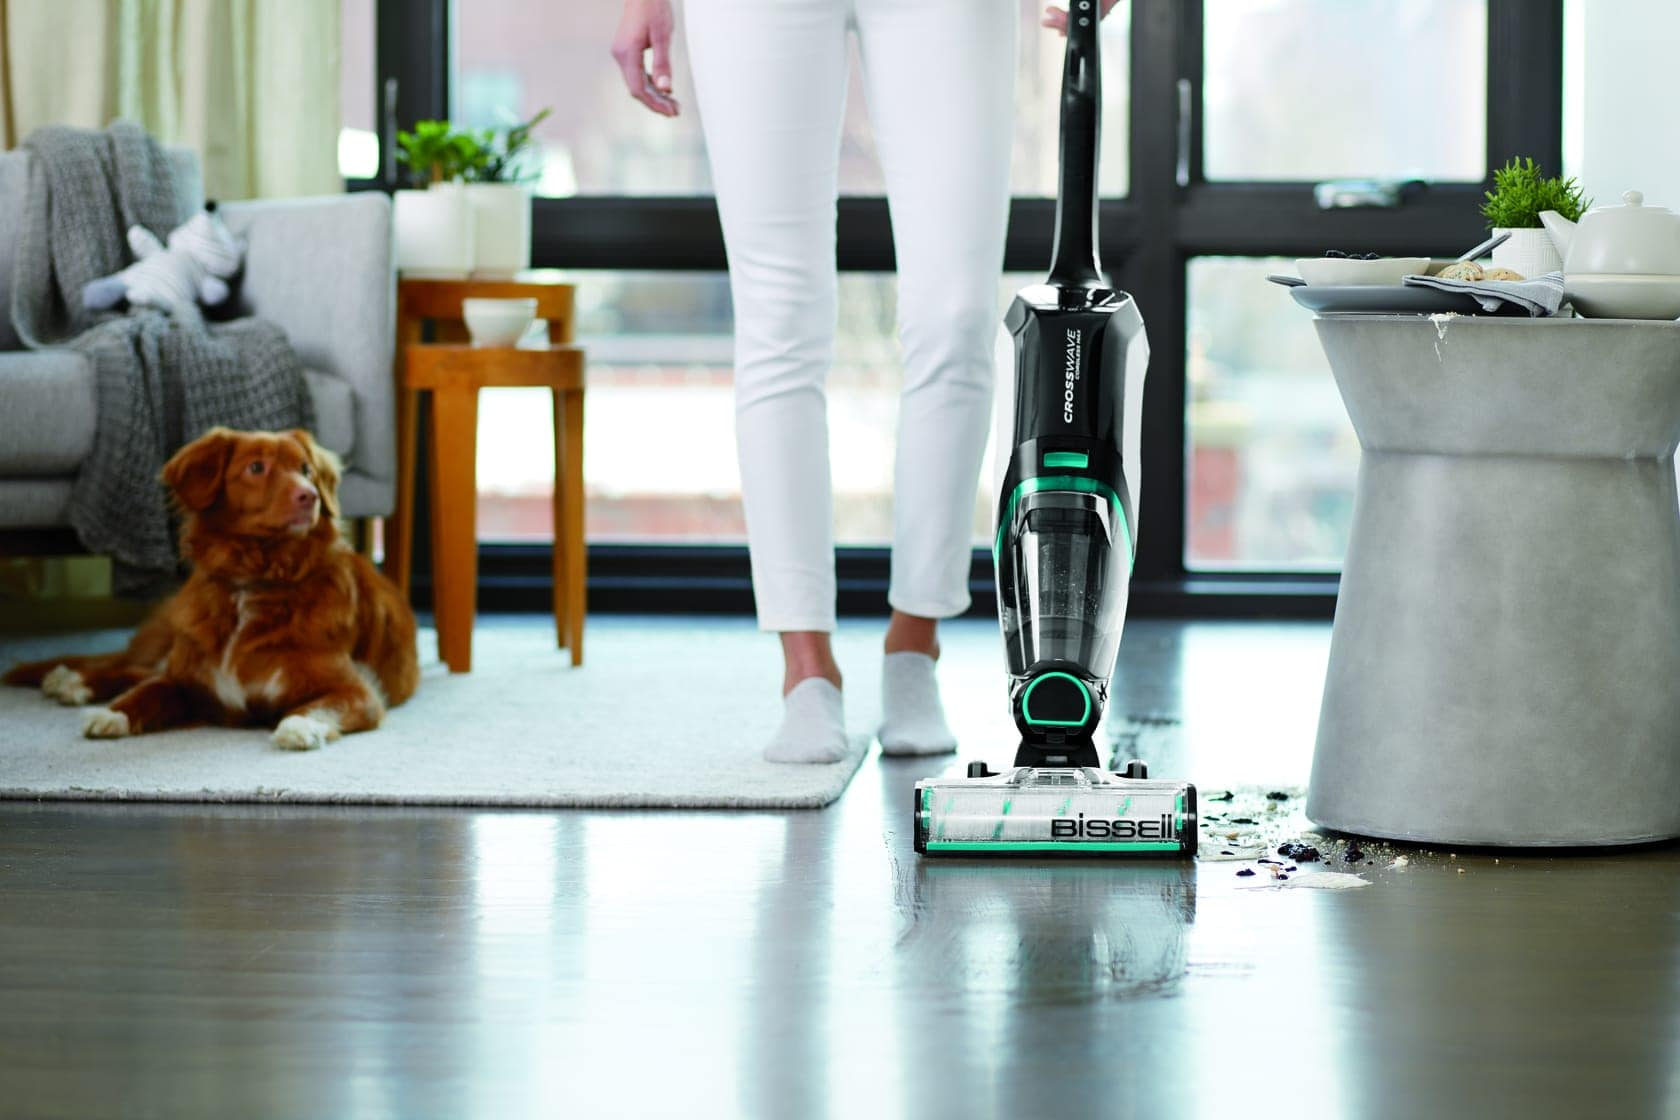 a woman vacuuming up a spill with a dog lying nearby